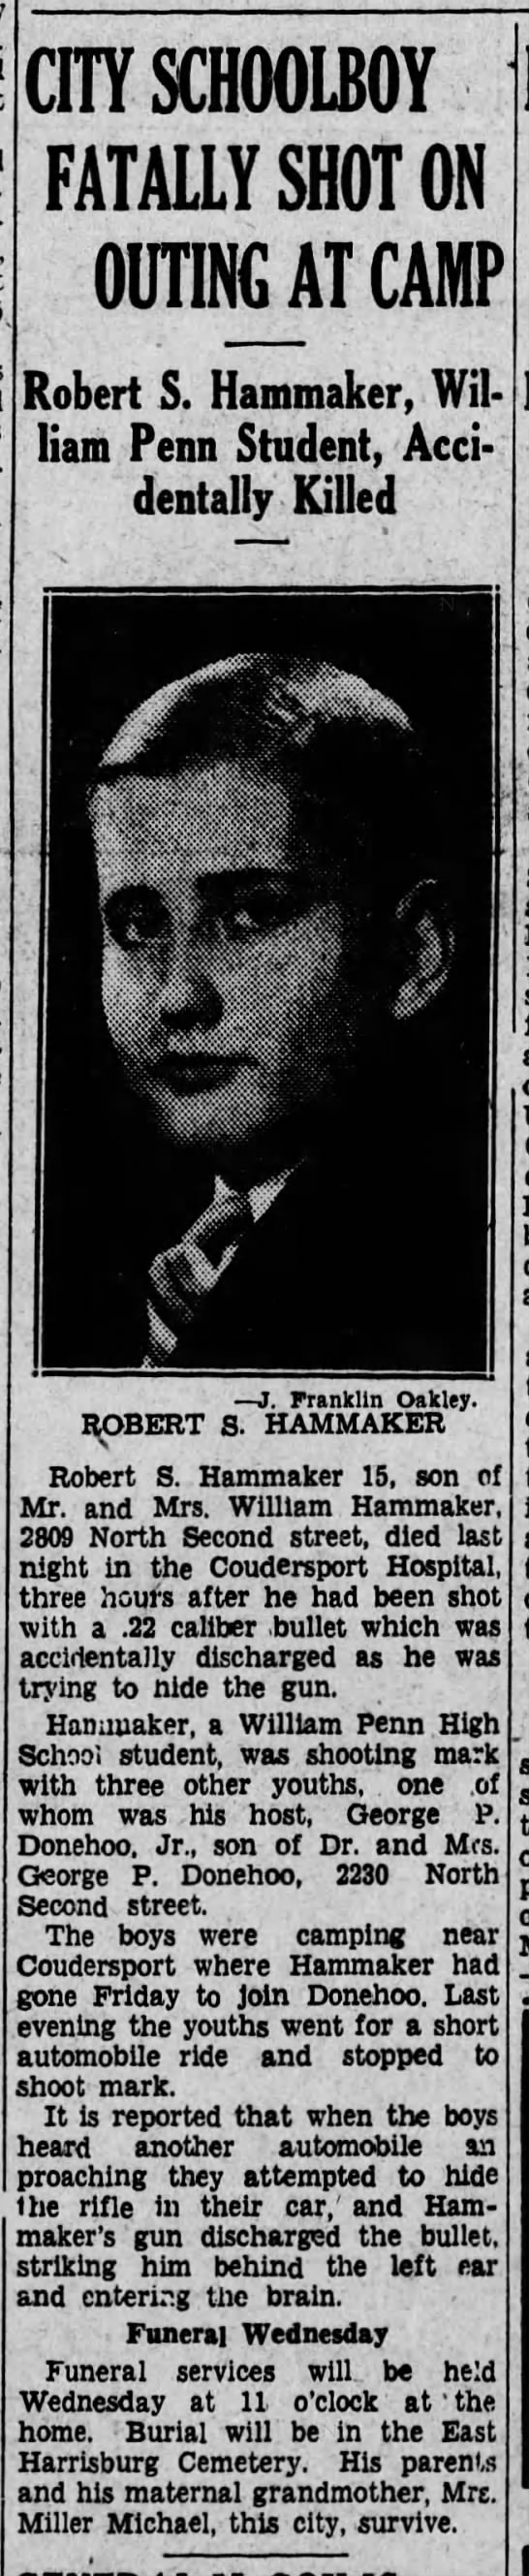 robert s hammaker accident shooting 1915- 1930 father william  - CITY SCHOOLBOY FATALLY SHOT ON OUTING AT CAMP...